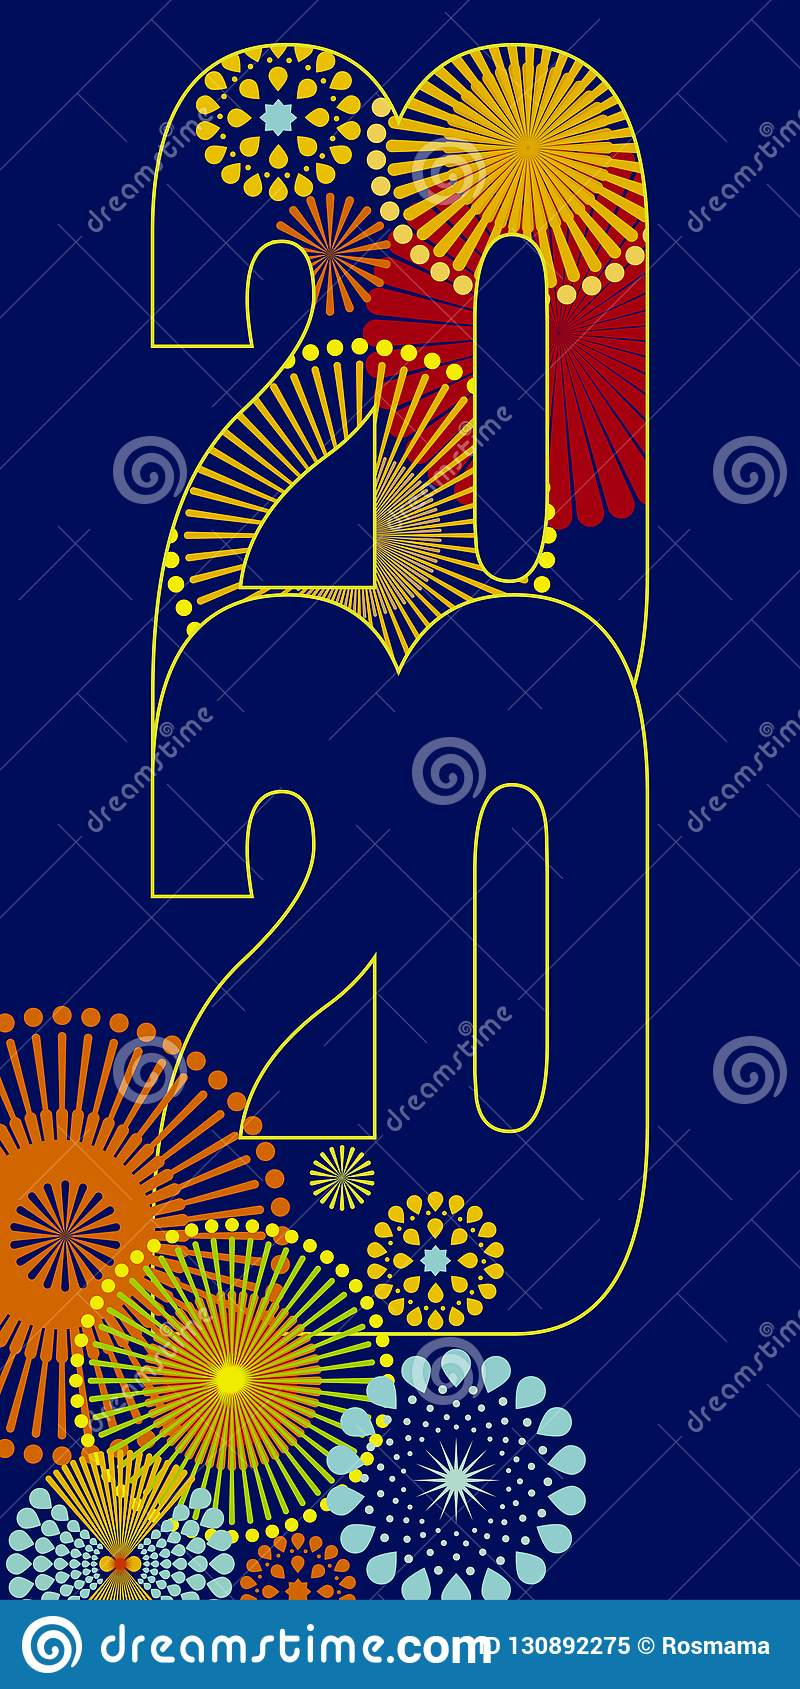 Merry Christmas 2020 Cover Happy New Year 2020 Vector Background Stock Vector   Illustration